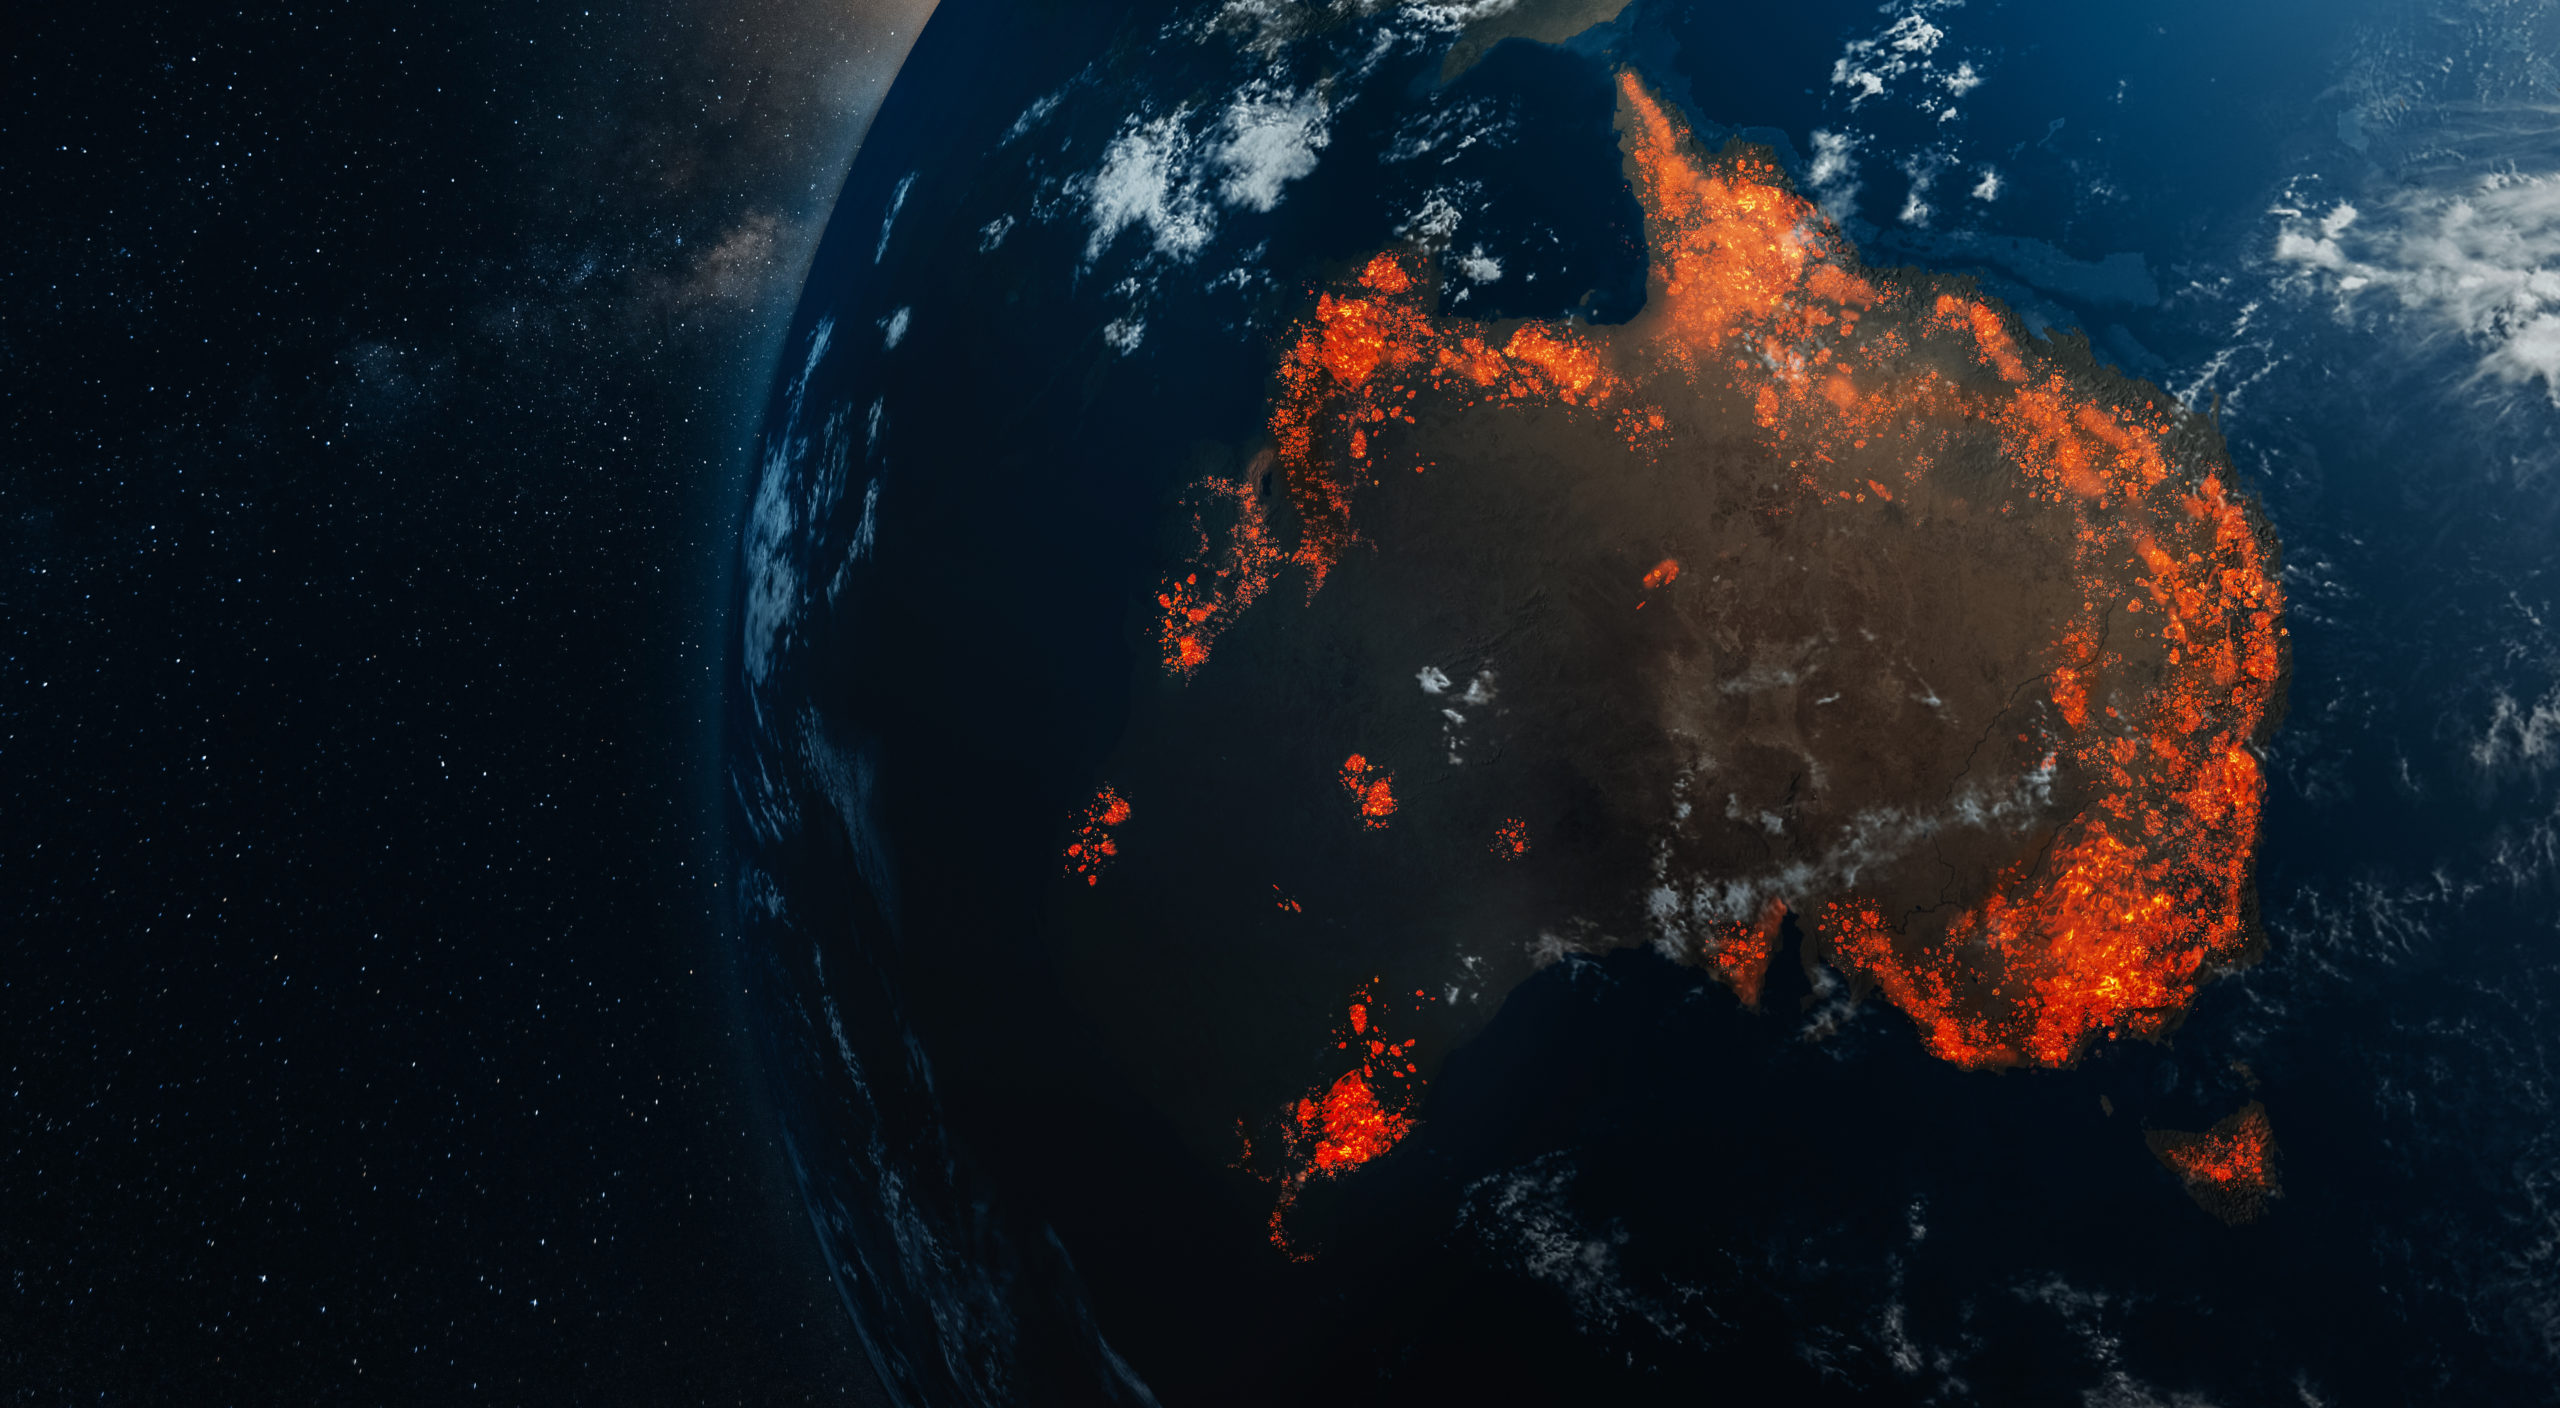 3D illustration of Earth with parts of Australia engulfed in flames.